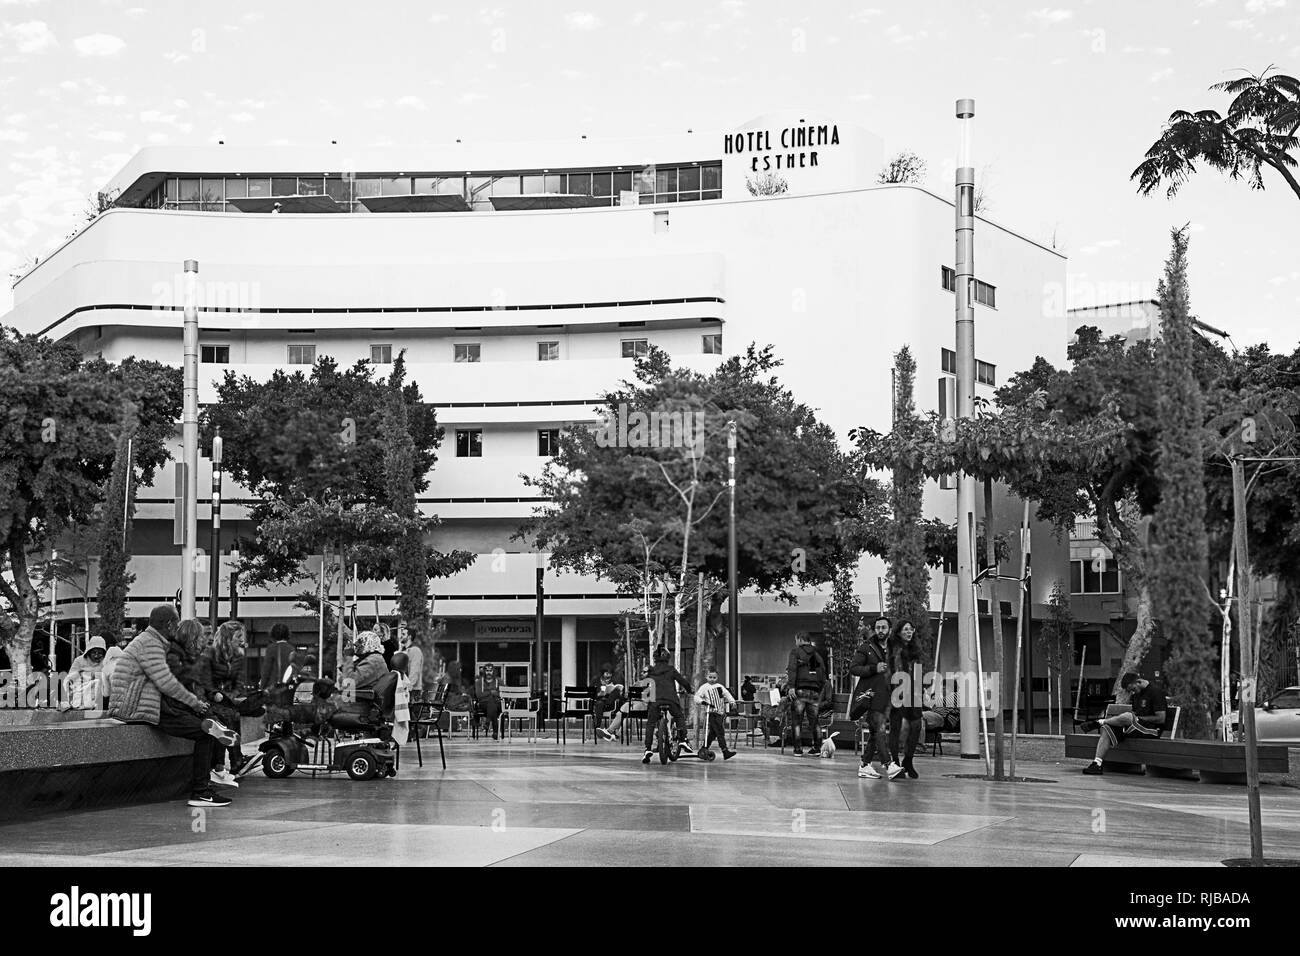 Tel Aviv, Israel-Januare 12, 2019:Renovated Bauhaus Buildings in the Dizengoff Square,Tel Aviv,Israel.Black and White Image - Stock Image